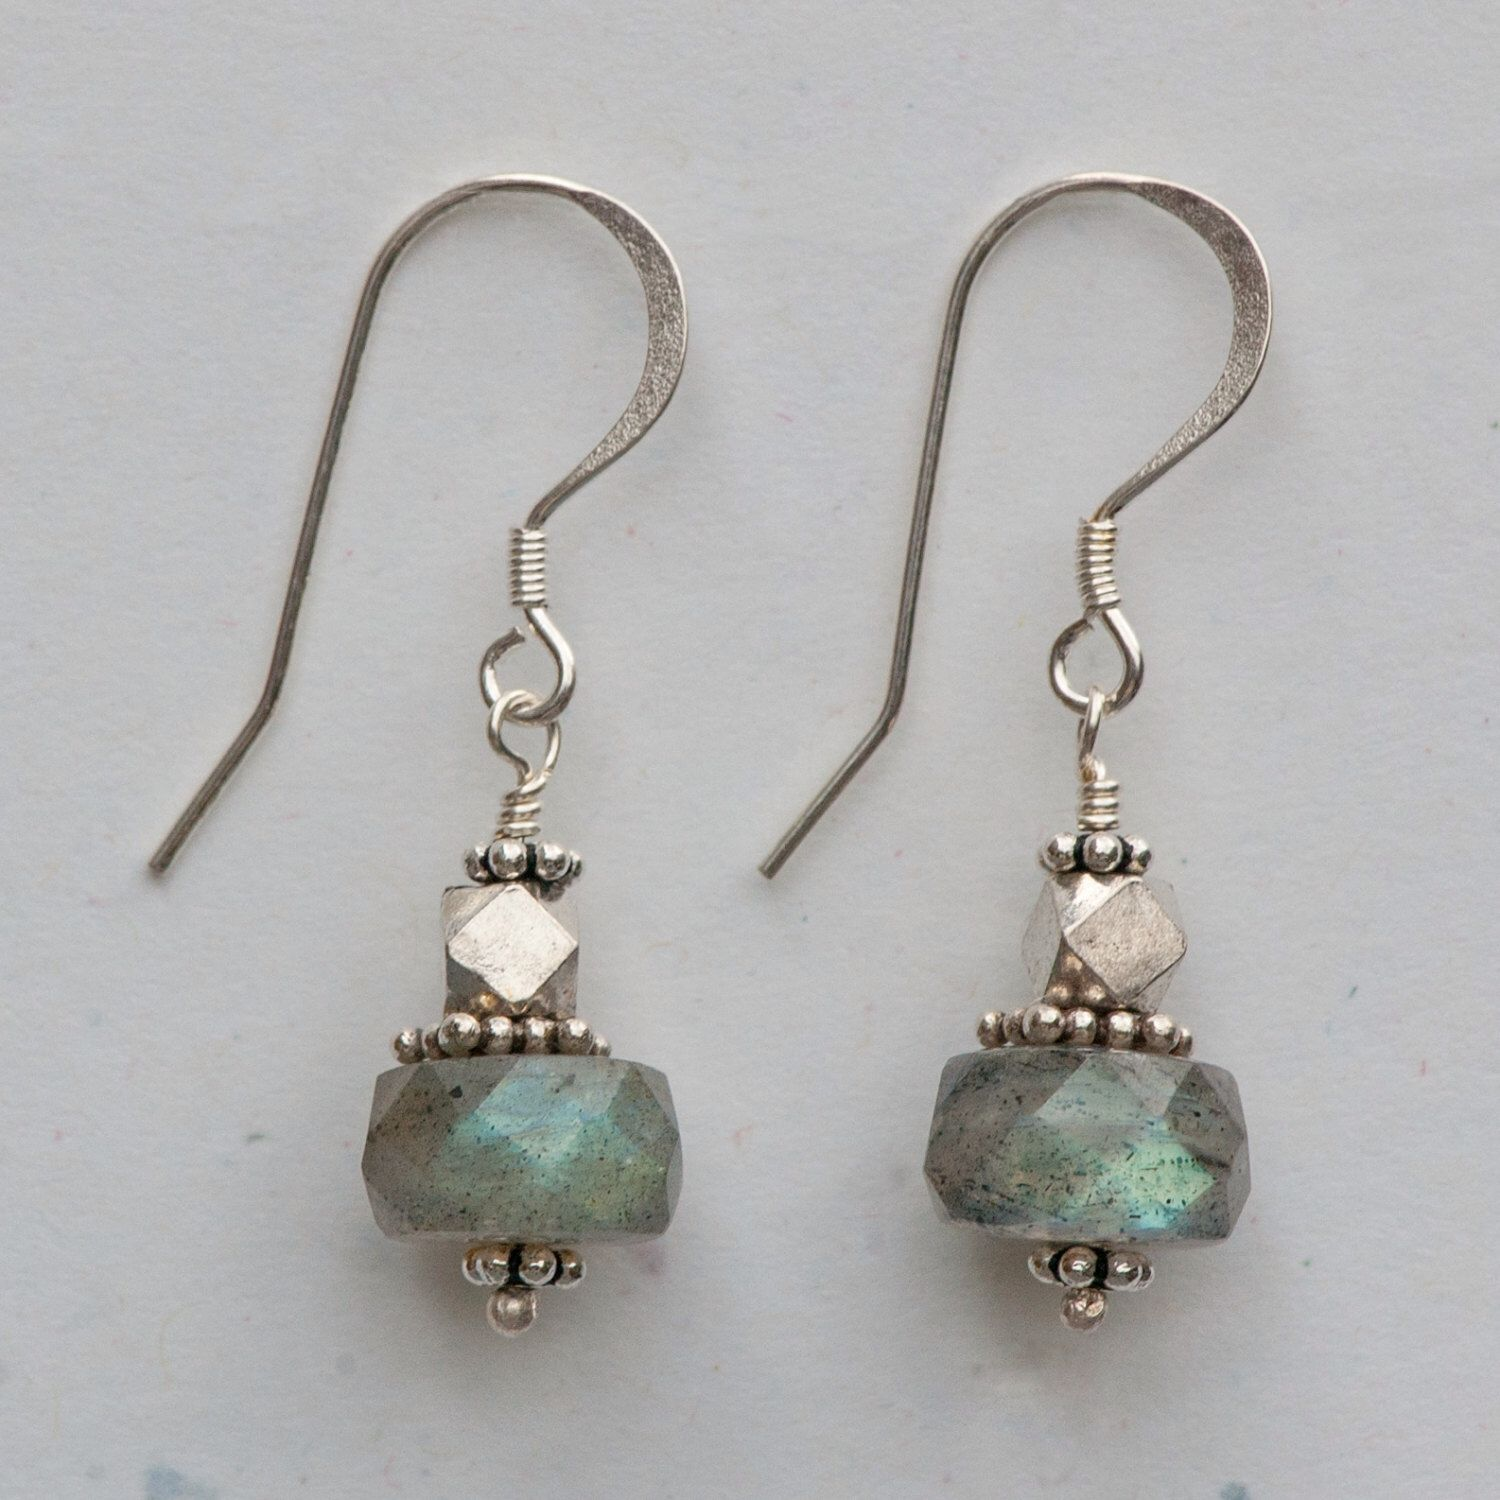 Labradorite Earrings | Labradorite, Etsy and Beads